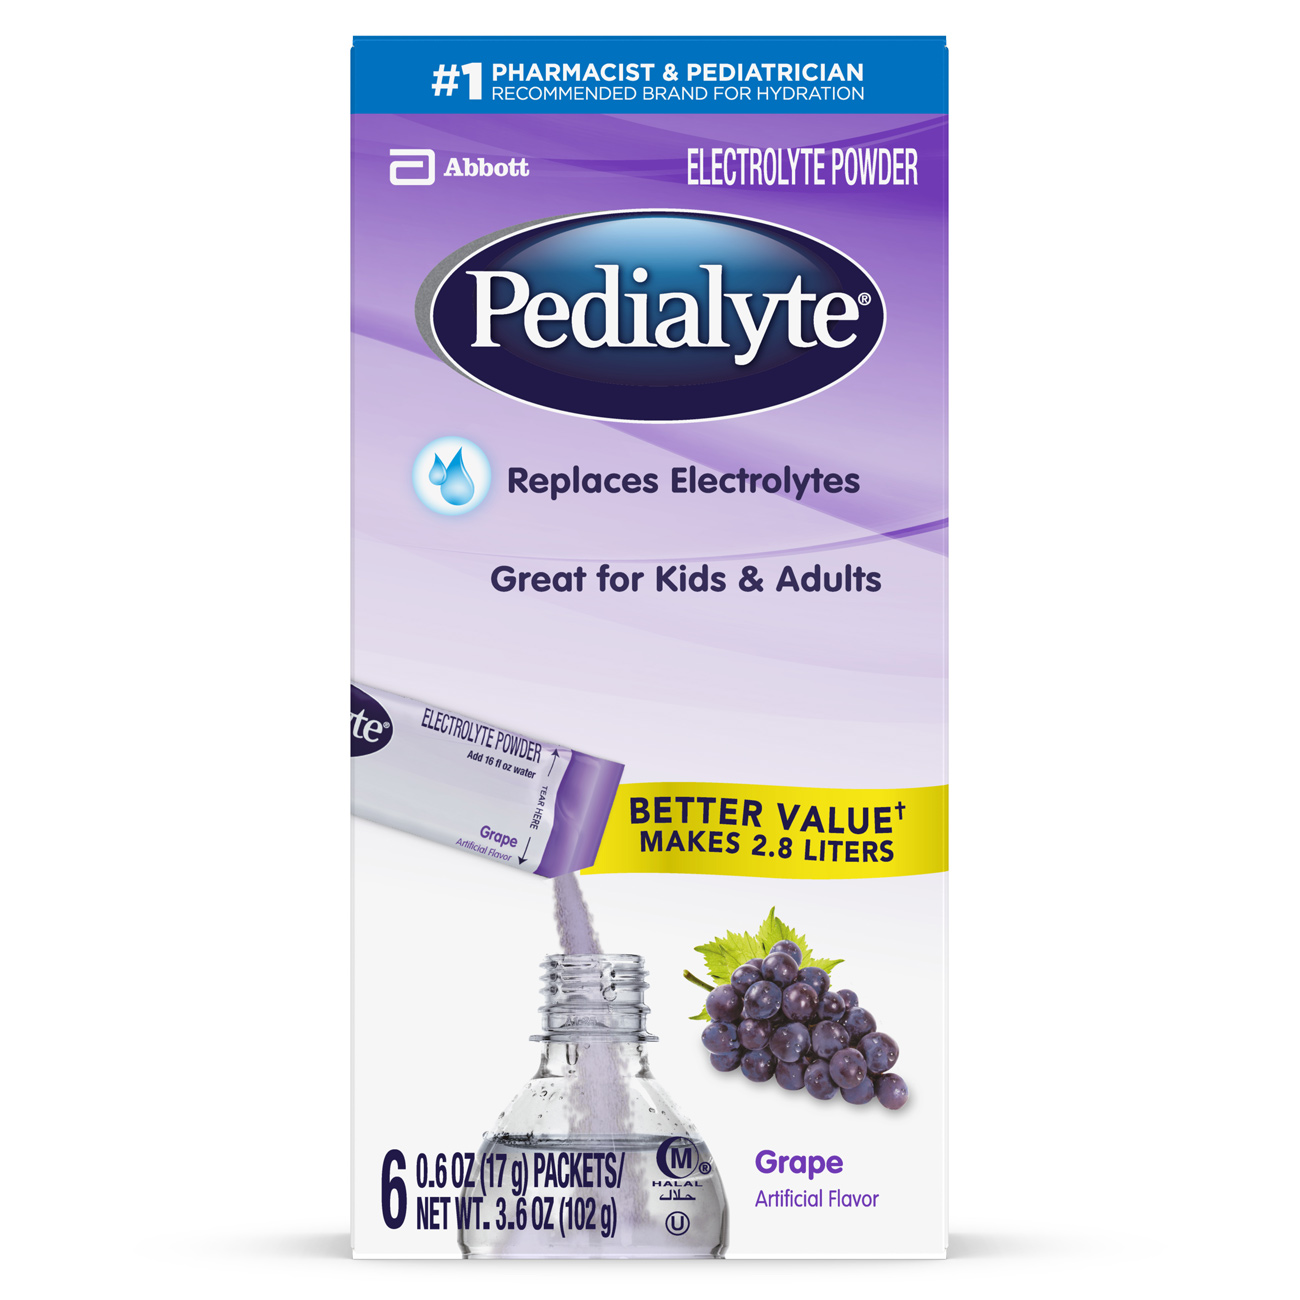 Pedialyte Electrolyte Powder Grape 0.6 oz Packet (Pack of 6)